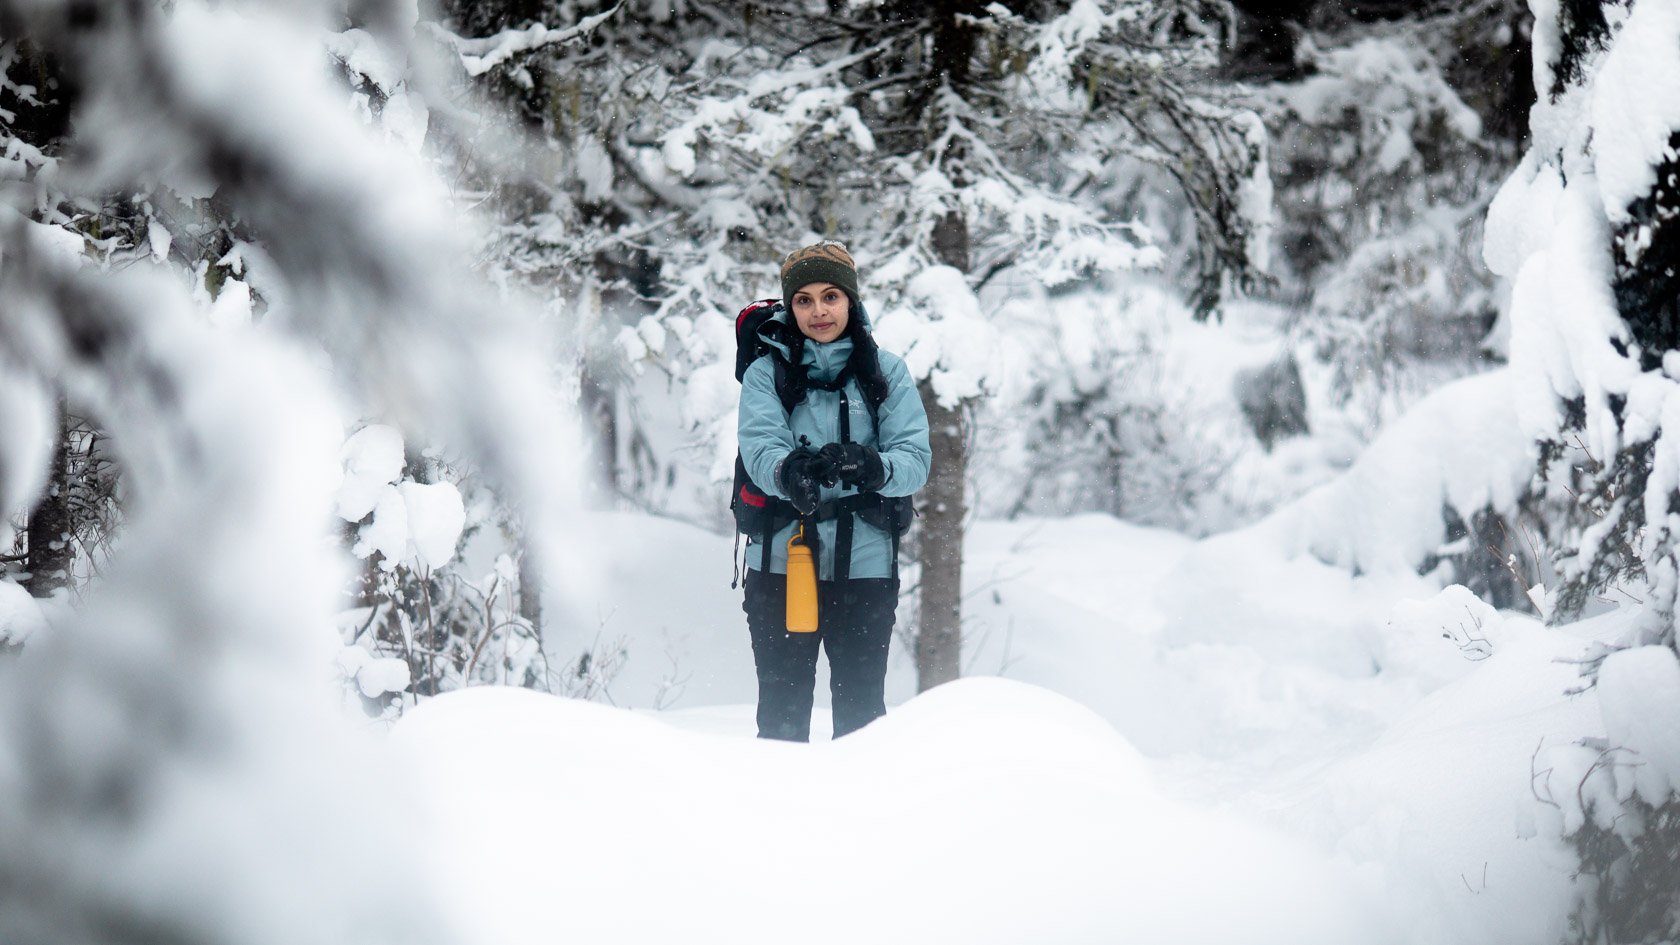 A women fully clad in winter hiking gear, pulls on her mitts while smiling into the camera, surrounded by a winter wonderland.